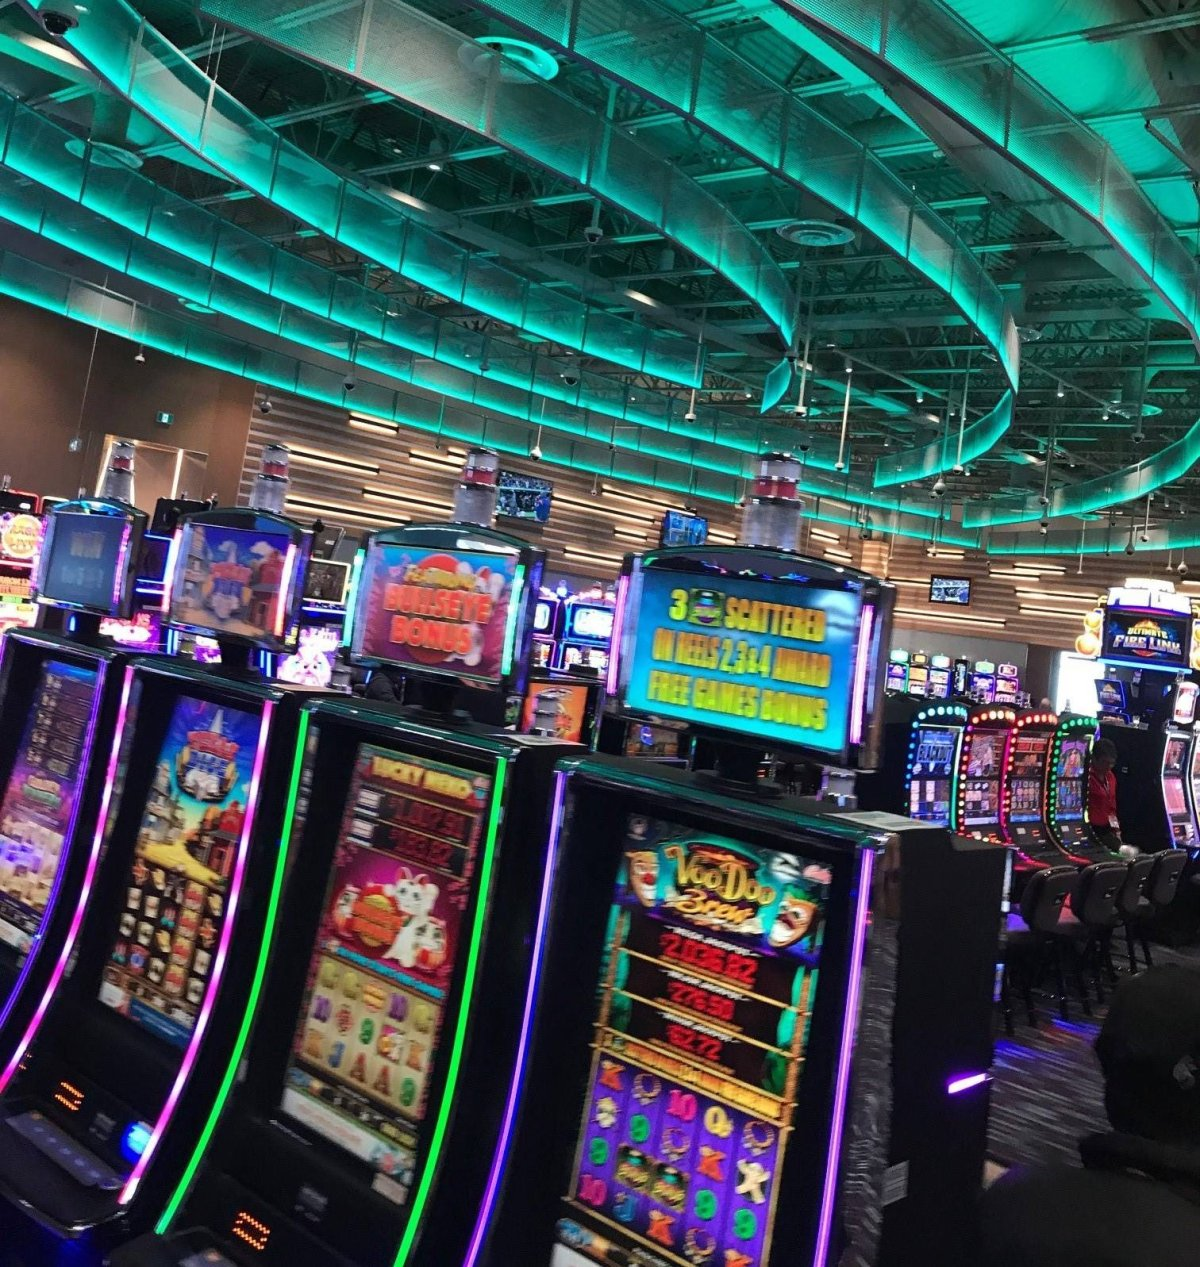 The OLG has ordered all casinos across Ontario to shutdown as precautionary measures against COVID-19.